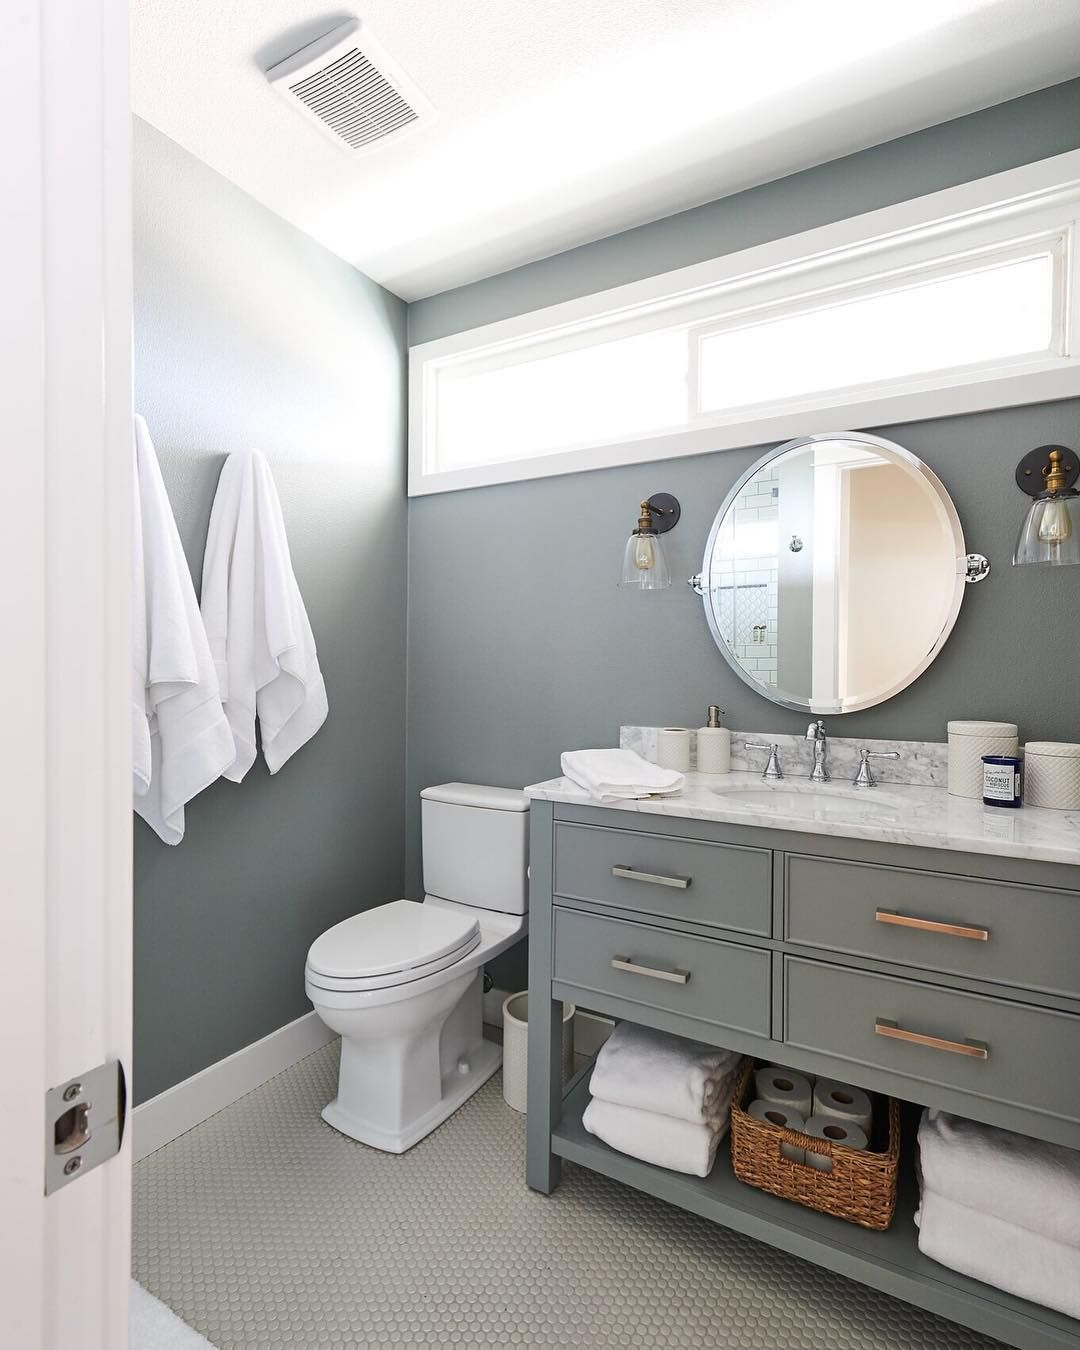 Kitchen And Bathroom Remodeling Contractors: #1stStreetProject Every Aspect Of This Bunk Bathroom Has